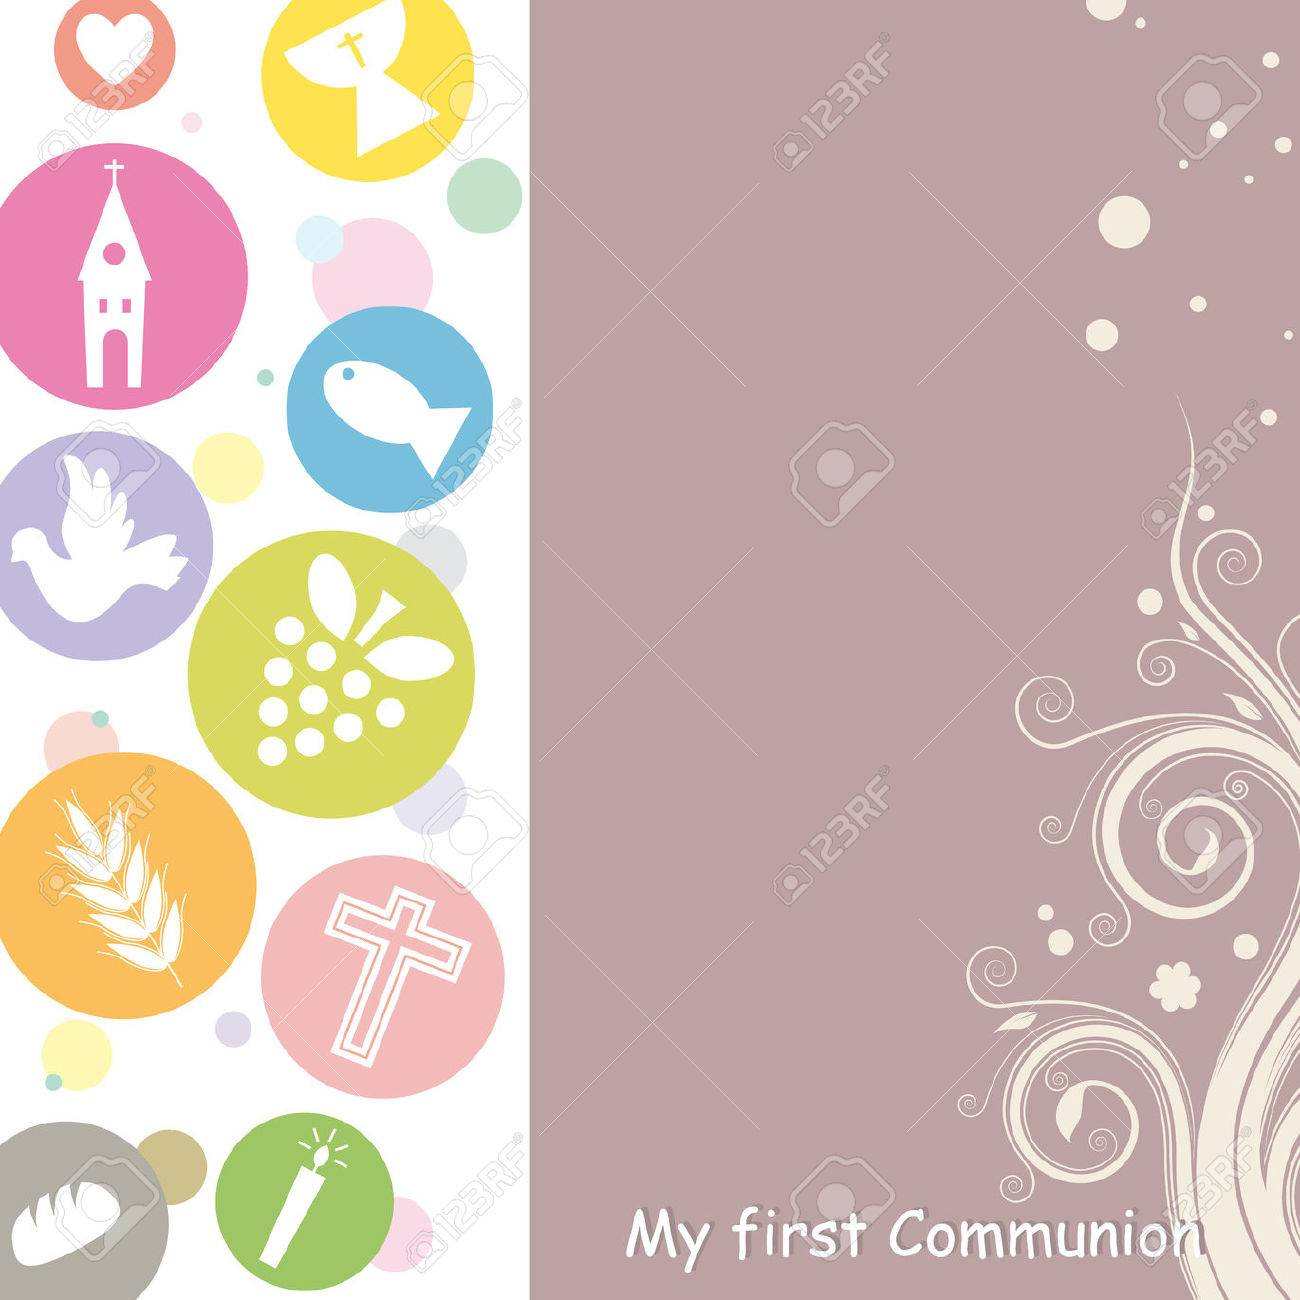 First Communion Invitation Card Stock Vector - 25121810